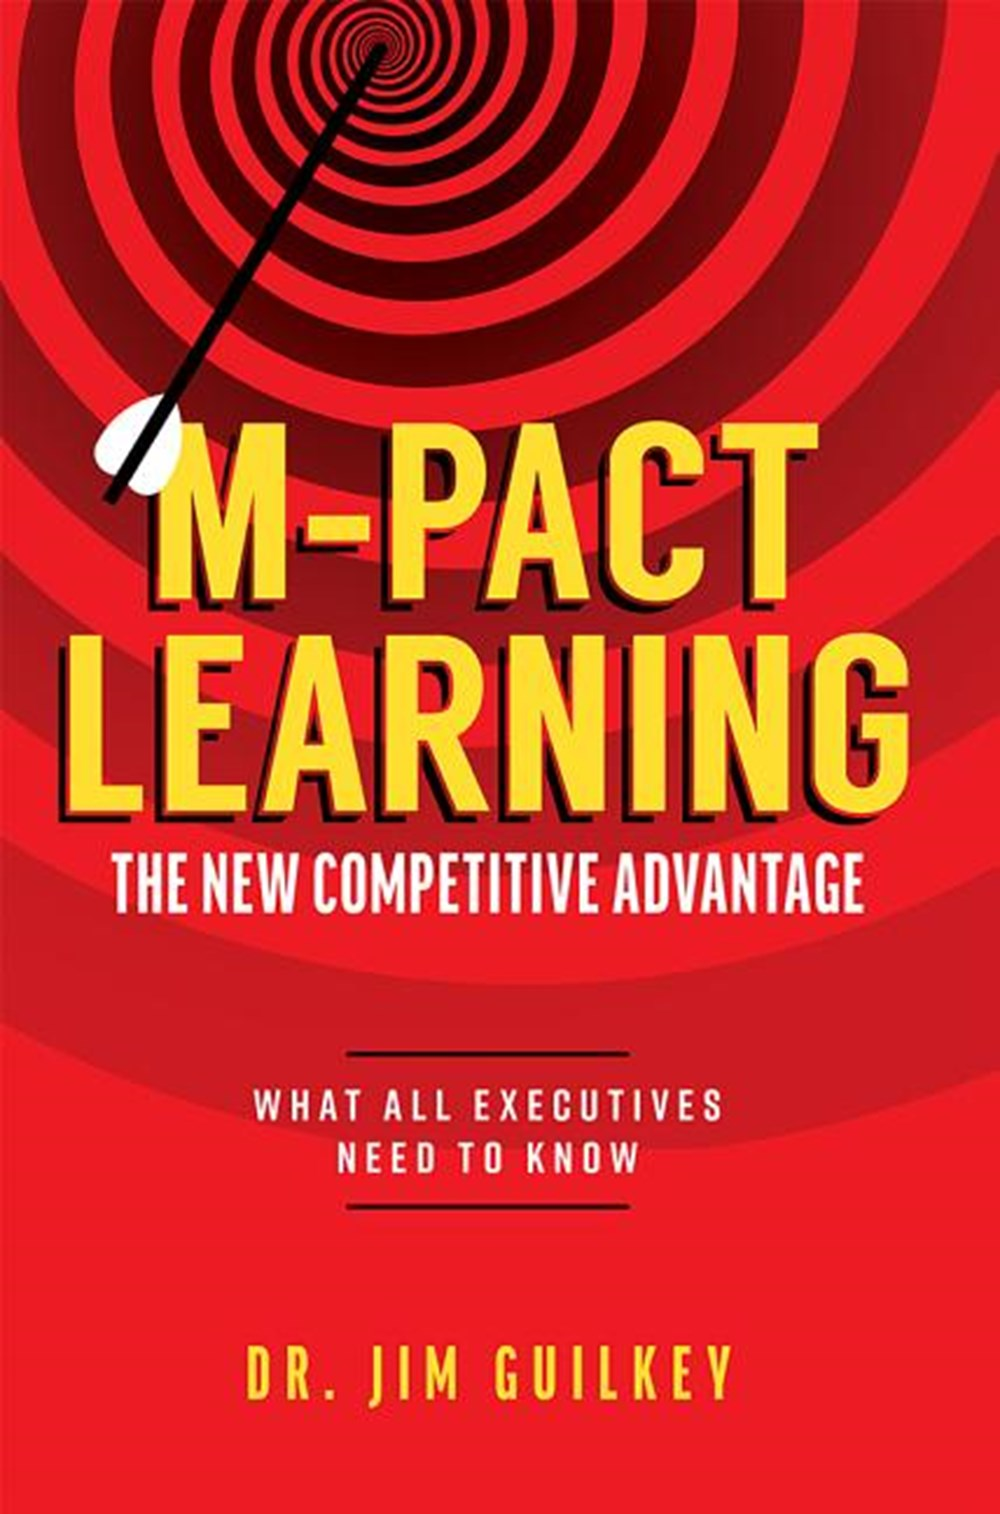 M-Pact Learning: The New Competitive Advantage: What All Executives Need to Know